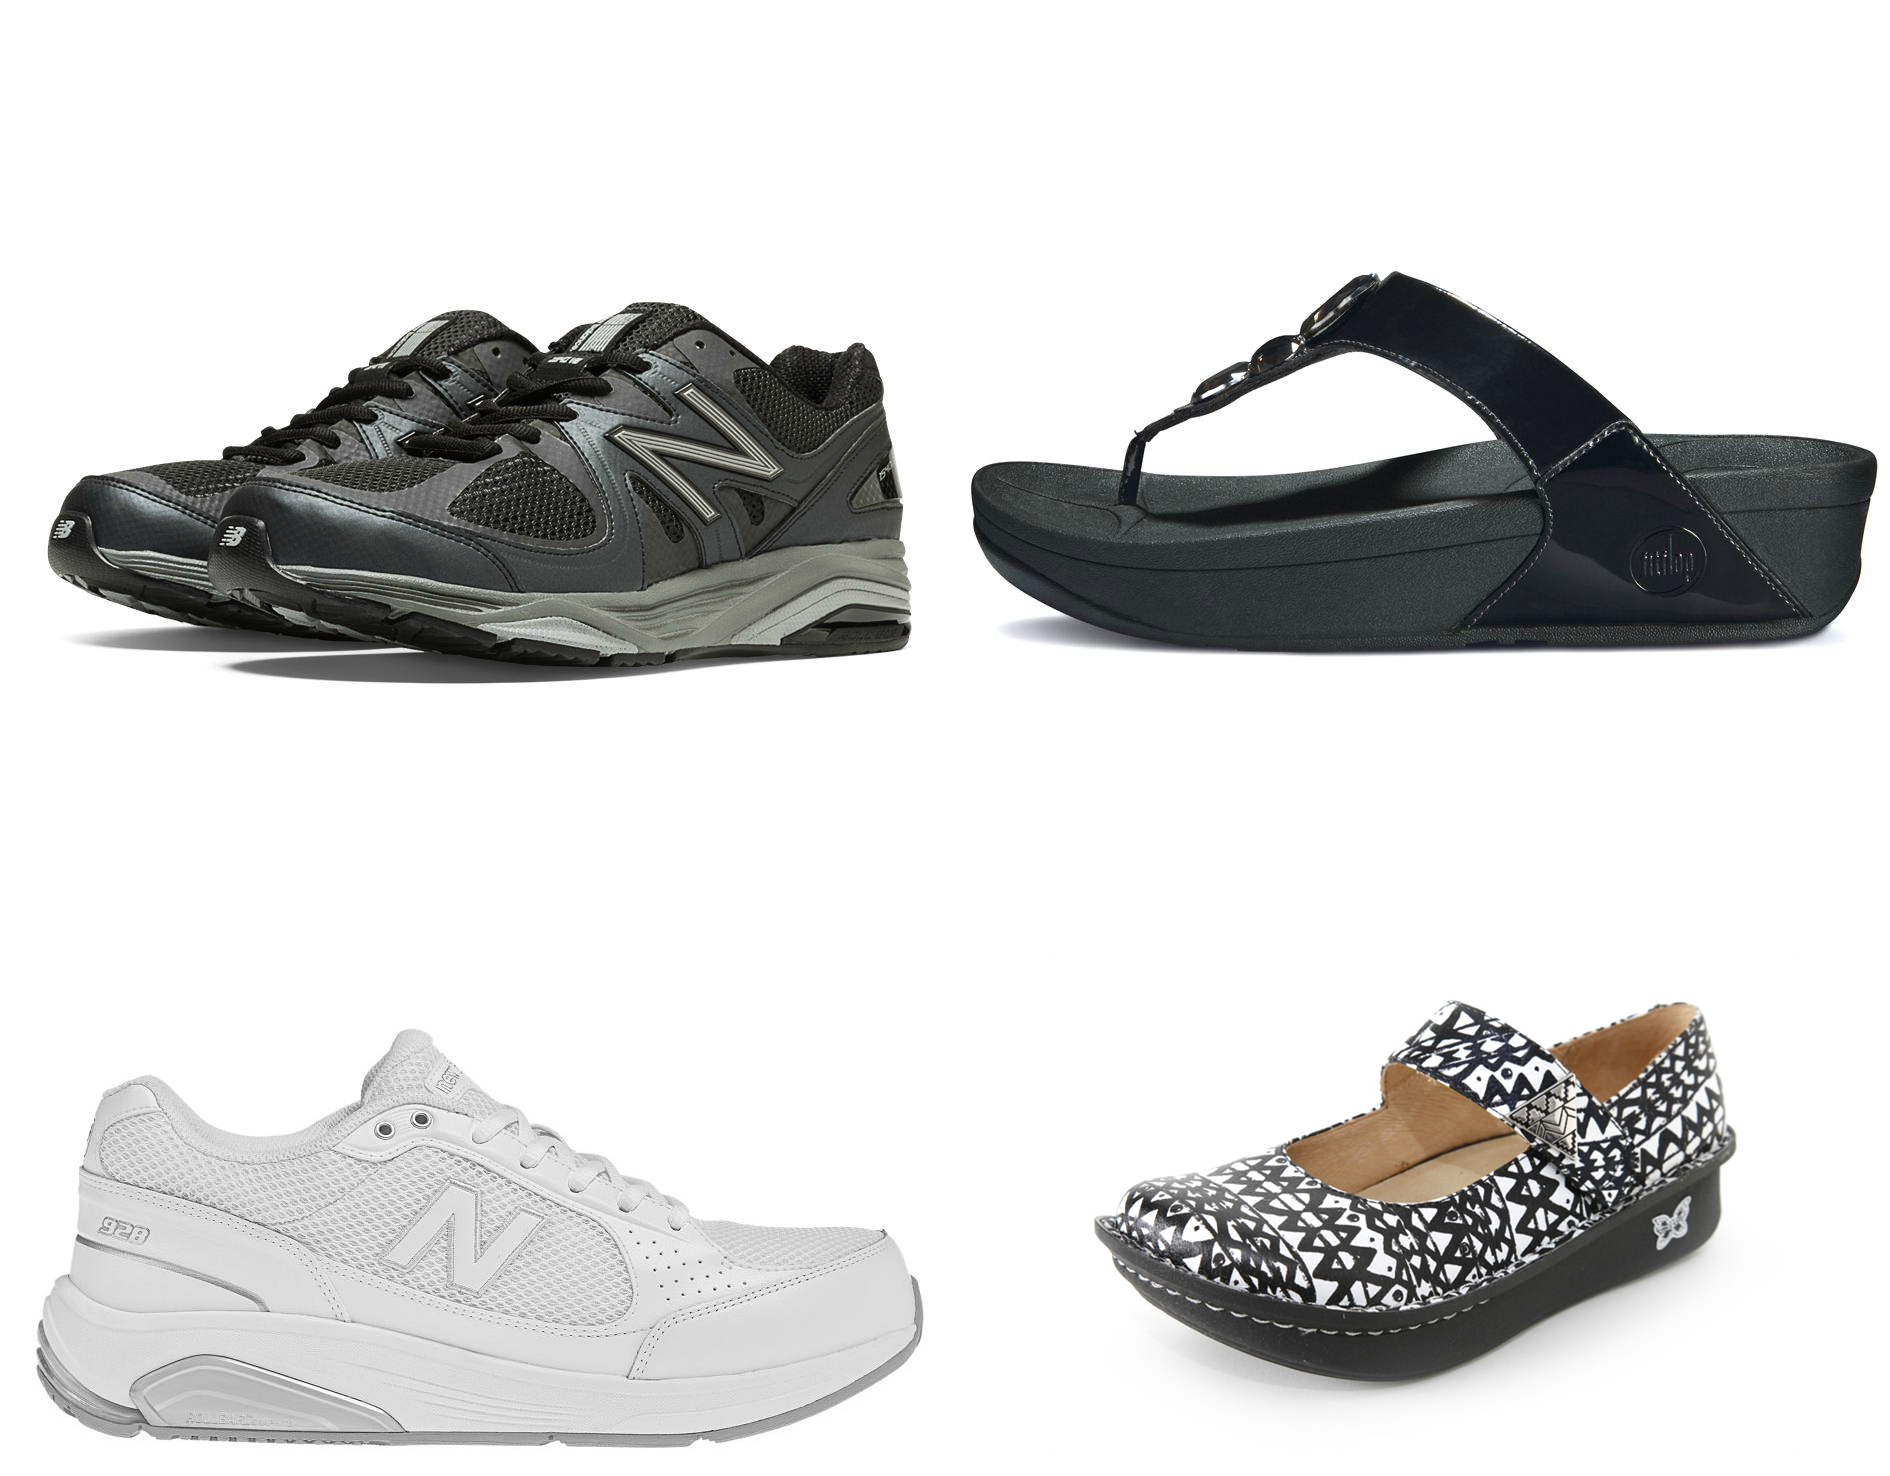 In This Post You Will Find The List Of The Best Shoes For Plantar